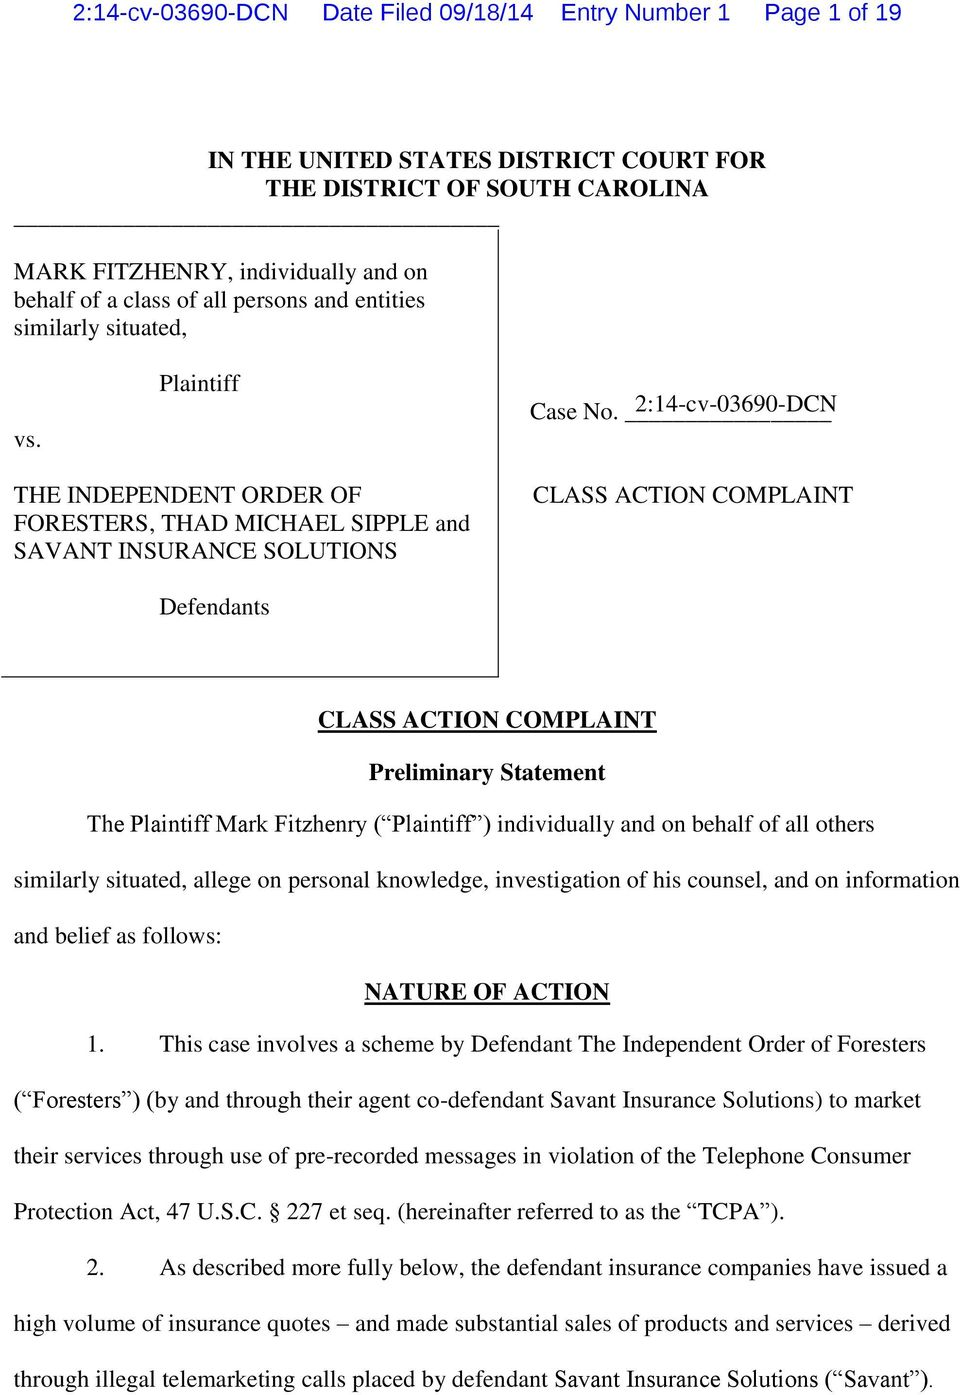 2:14-cv-03690-DCN THE INDEPENDENT ORDER OF FORESTERS, THAD MICHAEL SIPPLE and SAVANT INSURANCE SOLUTIONS CLASS ACTION COMPLAINT Defendants CLASS ACTION COMPLAINT Preliminary Statement The Plaintiff